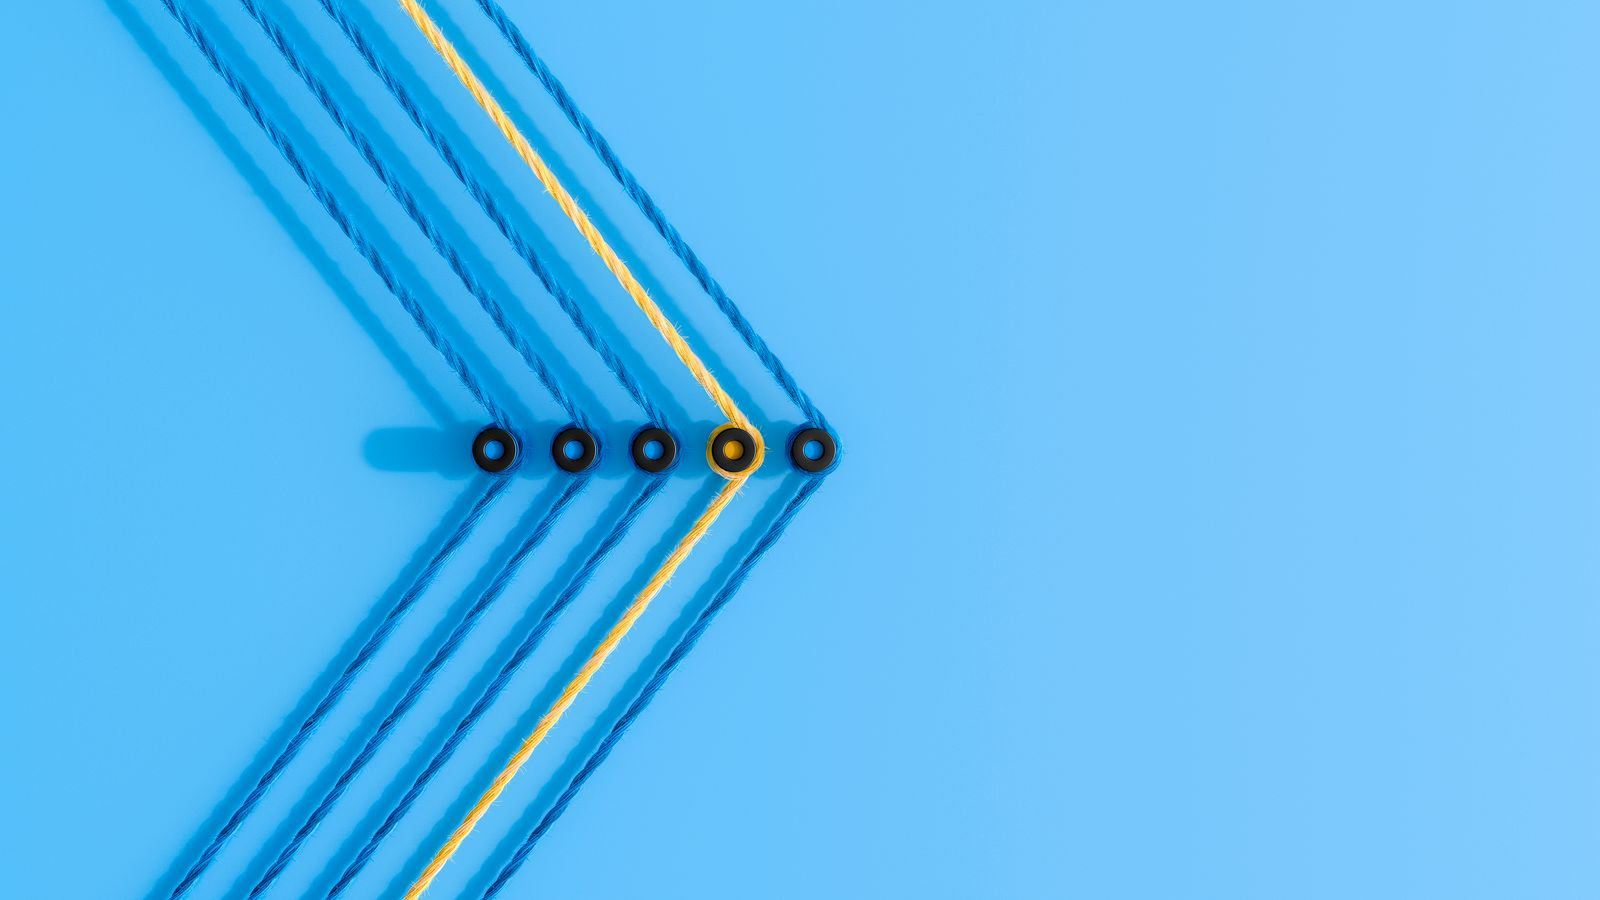 3D rendering, Arrow shape made from colorful threads, showing the direction